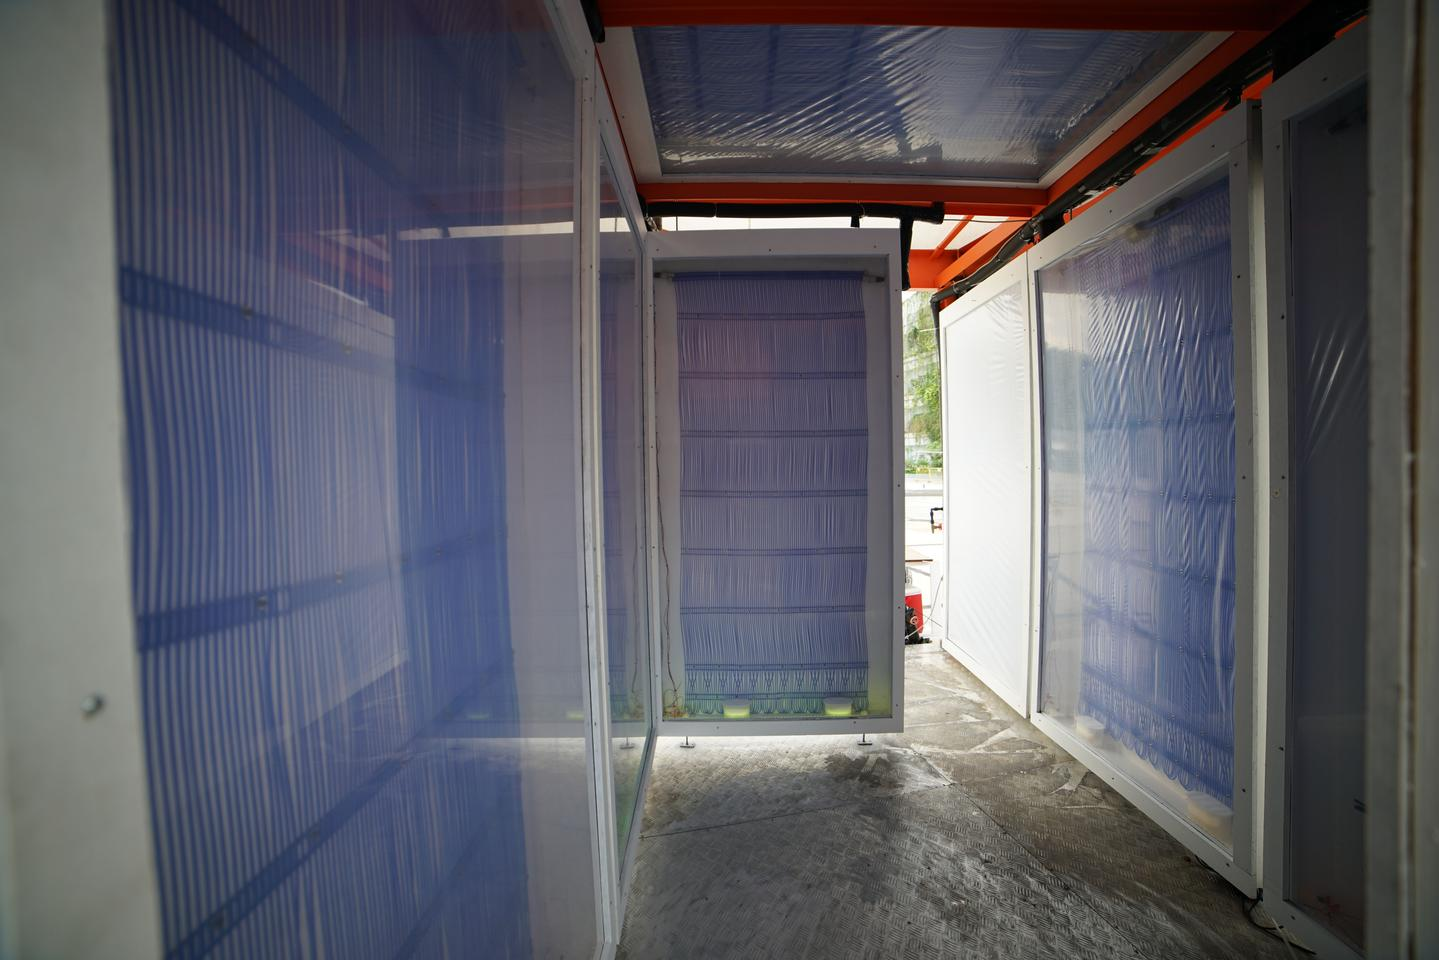 A look inside a pavilion incorporating the Cold Tube system